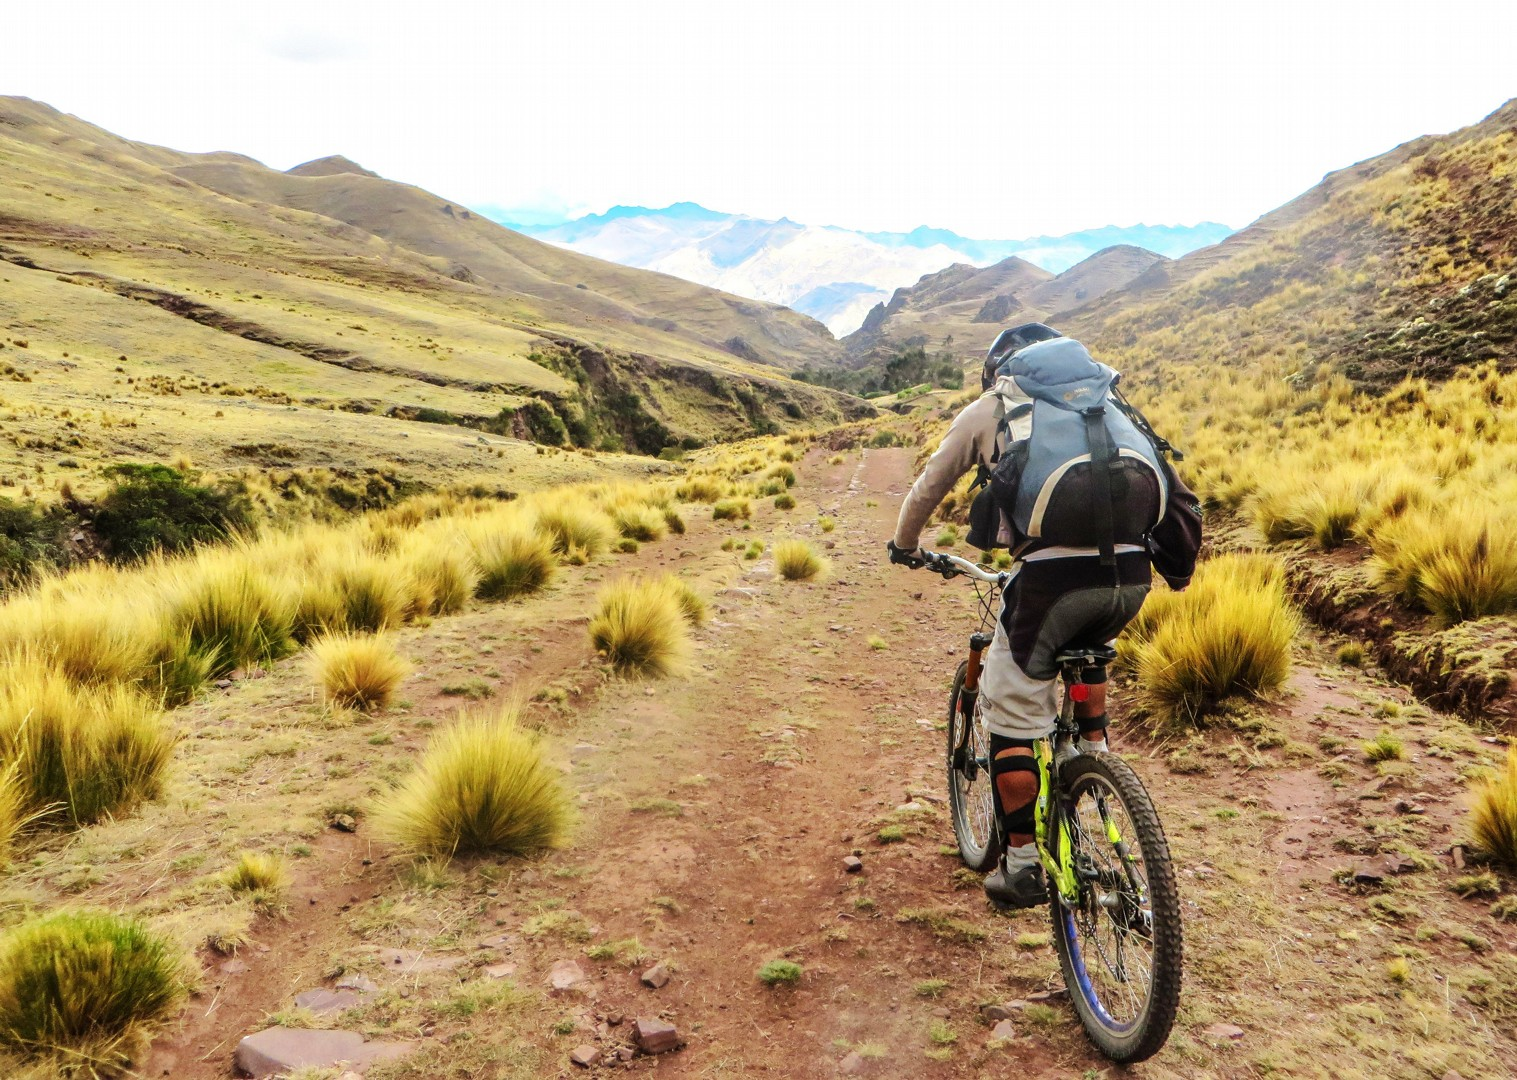 andean-journey-guided-mountain-bike-holiday-peru.jpg - Peru - Andean Journey - Guided Mountain Bike Holiday - Mountain Biking